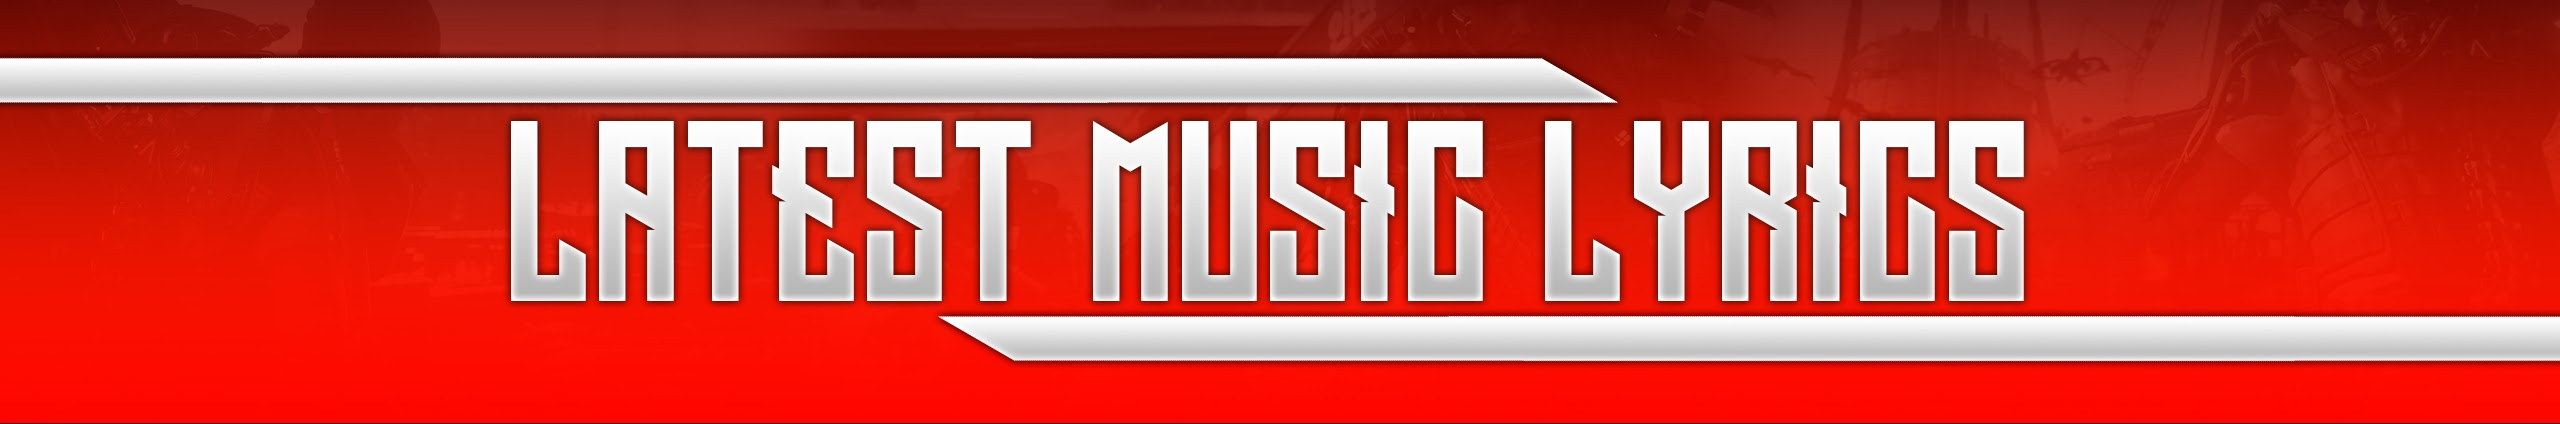 Latest Music Lyrics Youtube Channel Analytics And Report Powered By Noxinfluencer Mobile